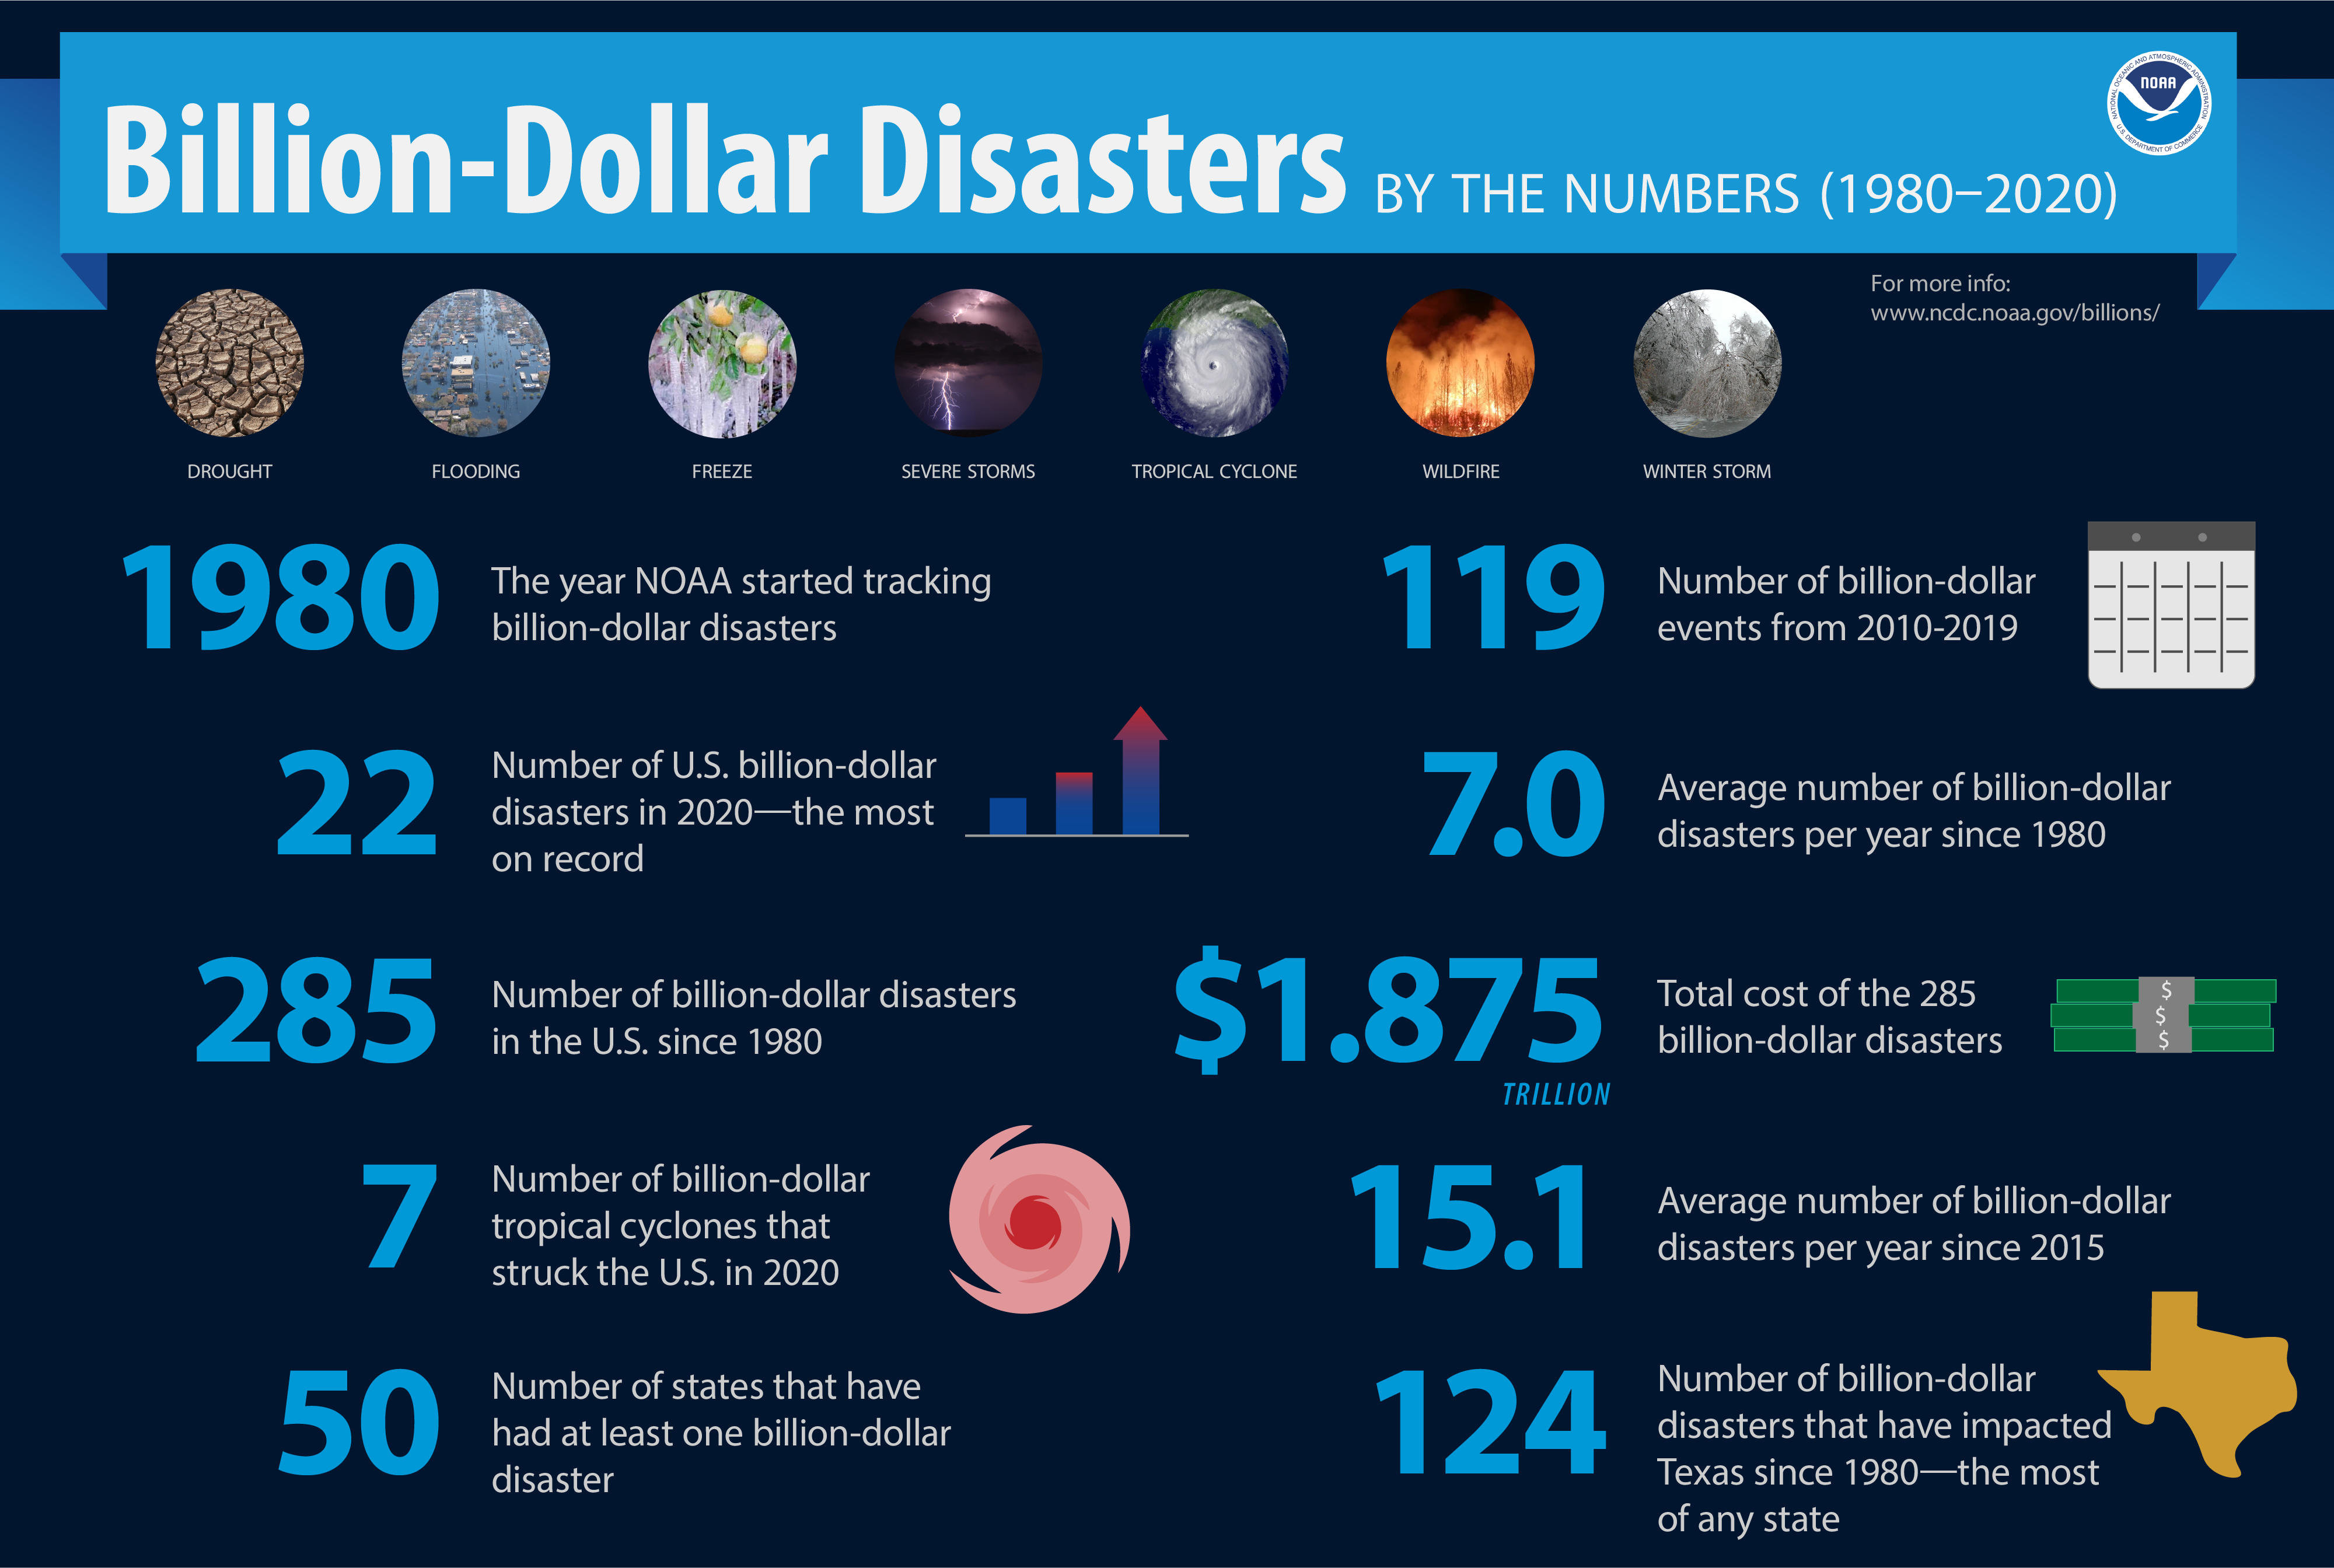 Billion Dollar Disasters 1980-2020 By The Numbers Infographic